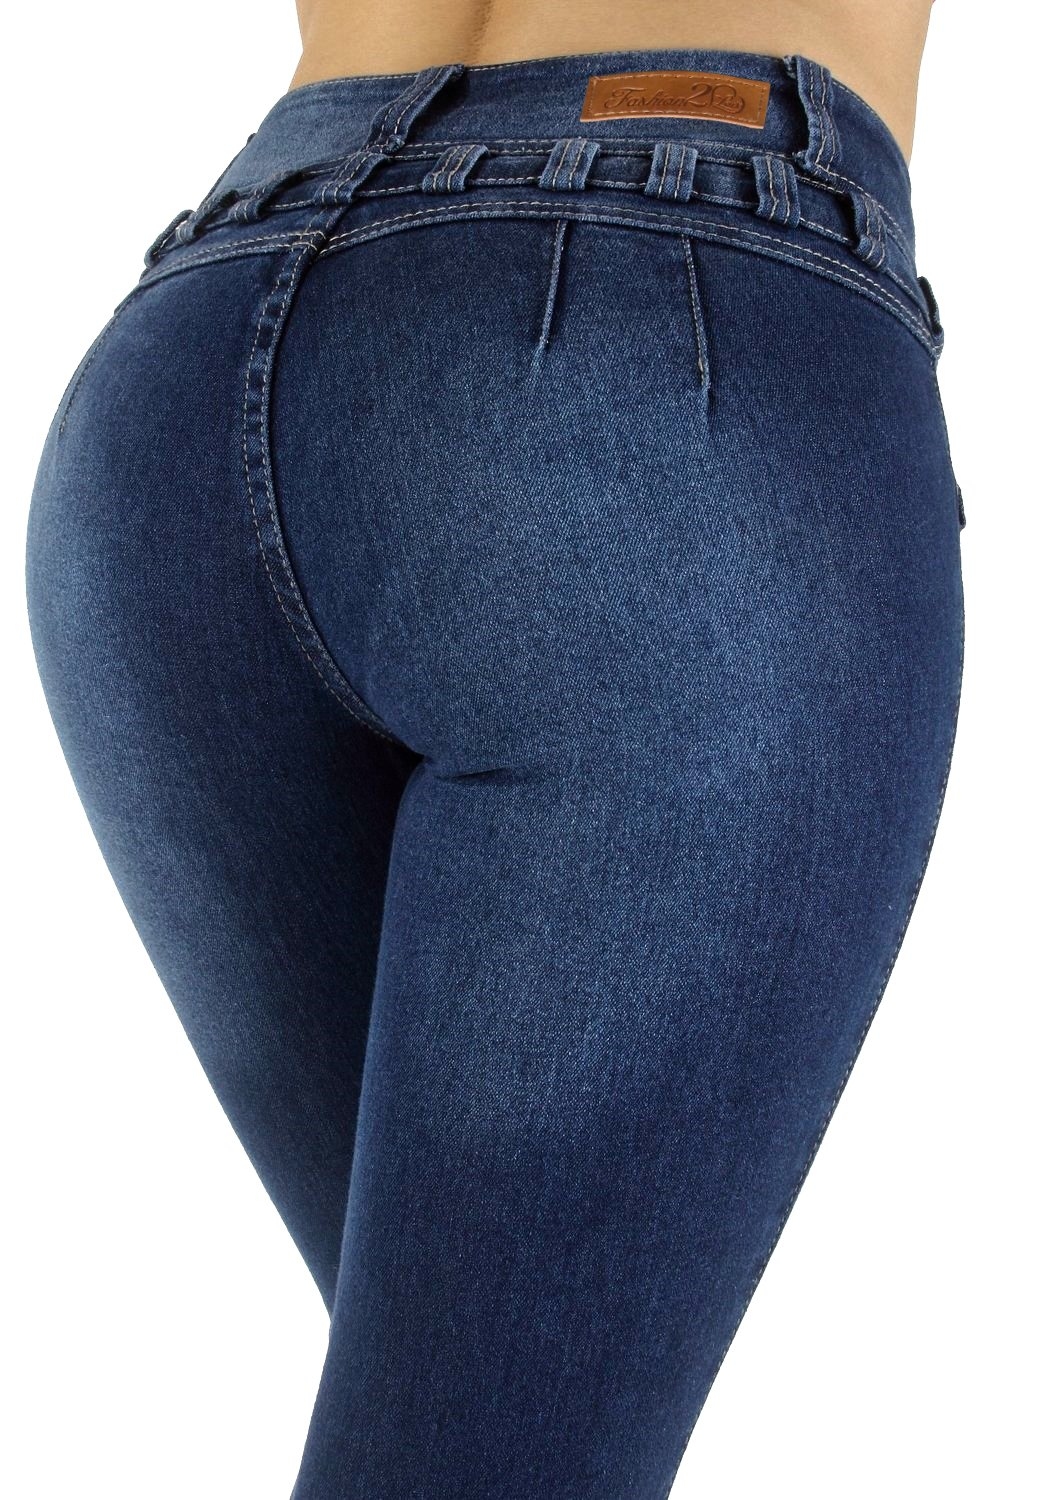 Style M1213– Colombian Design, High Waist, Butt Lift, Levanta Cola, Skinny Jeans In M. Blue Size 13